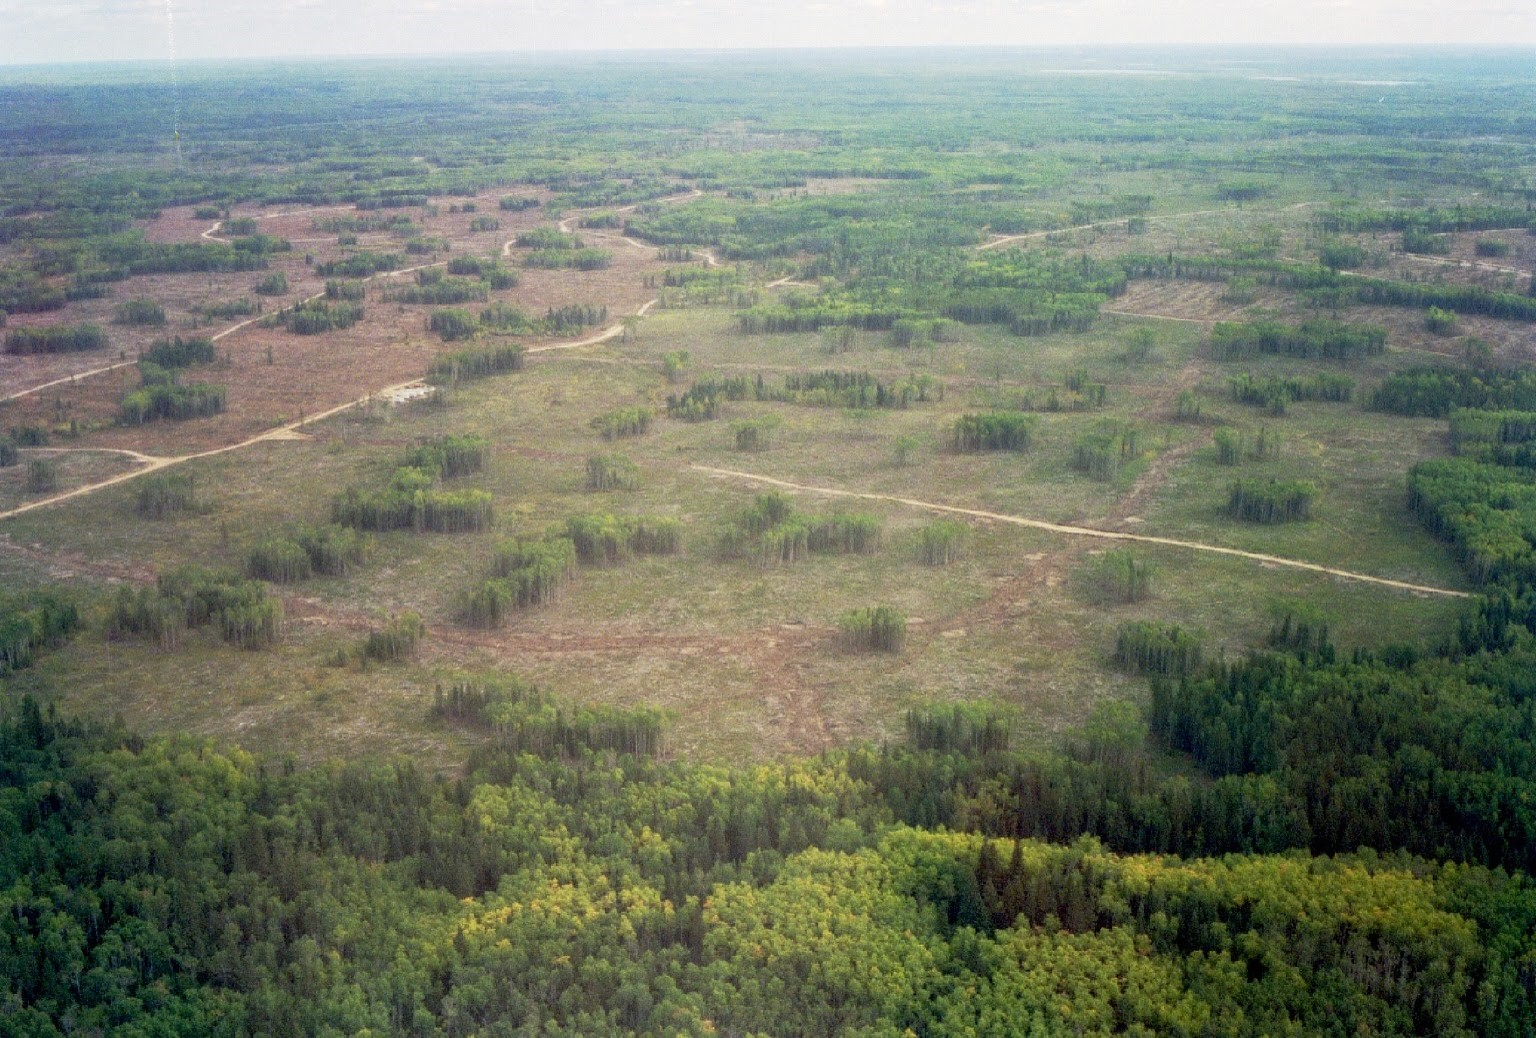 Aerial view of large harvest block with residual stands